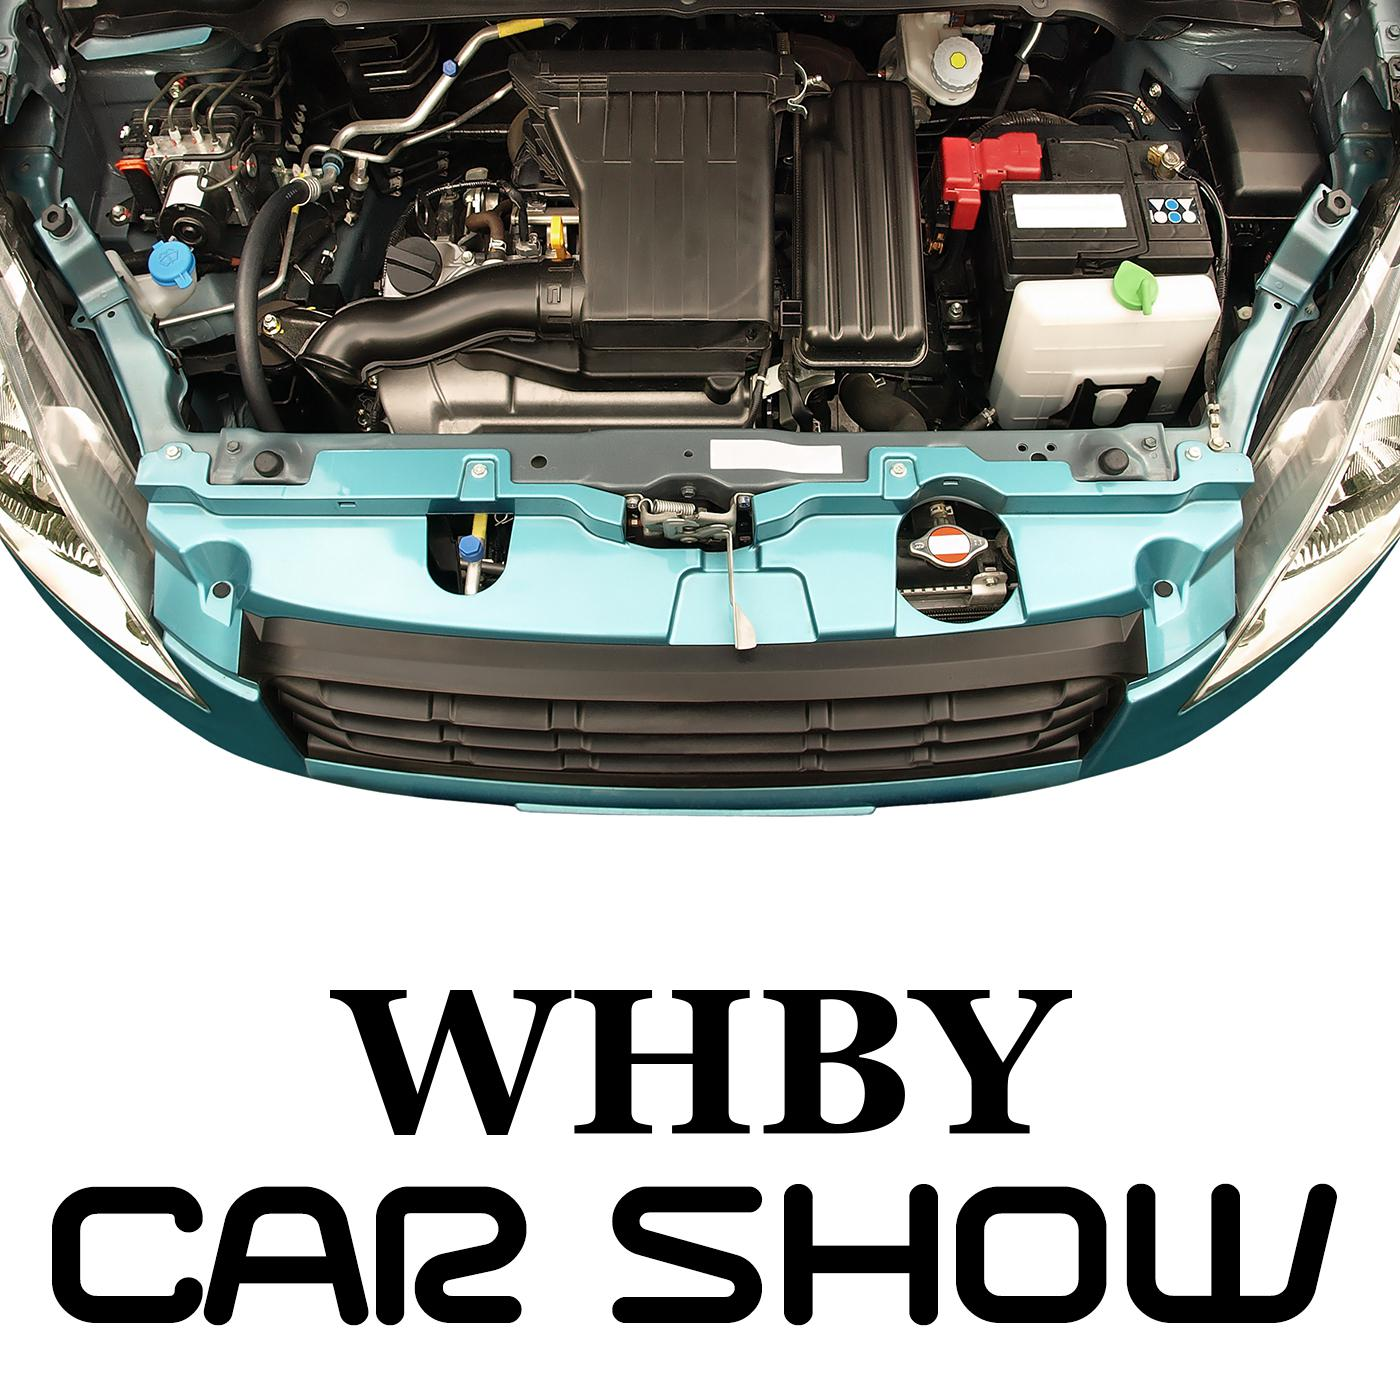 The WHBY Car Show with Dean Juliar (podcast) - Woodward